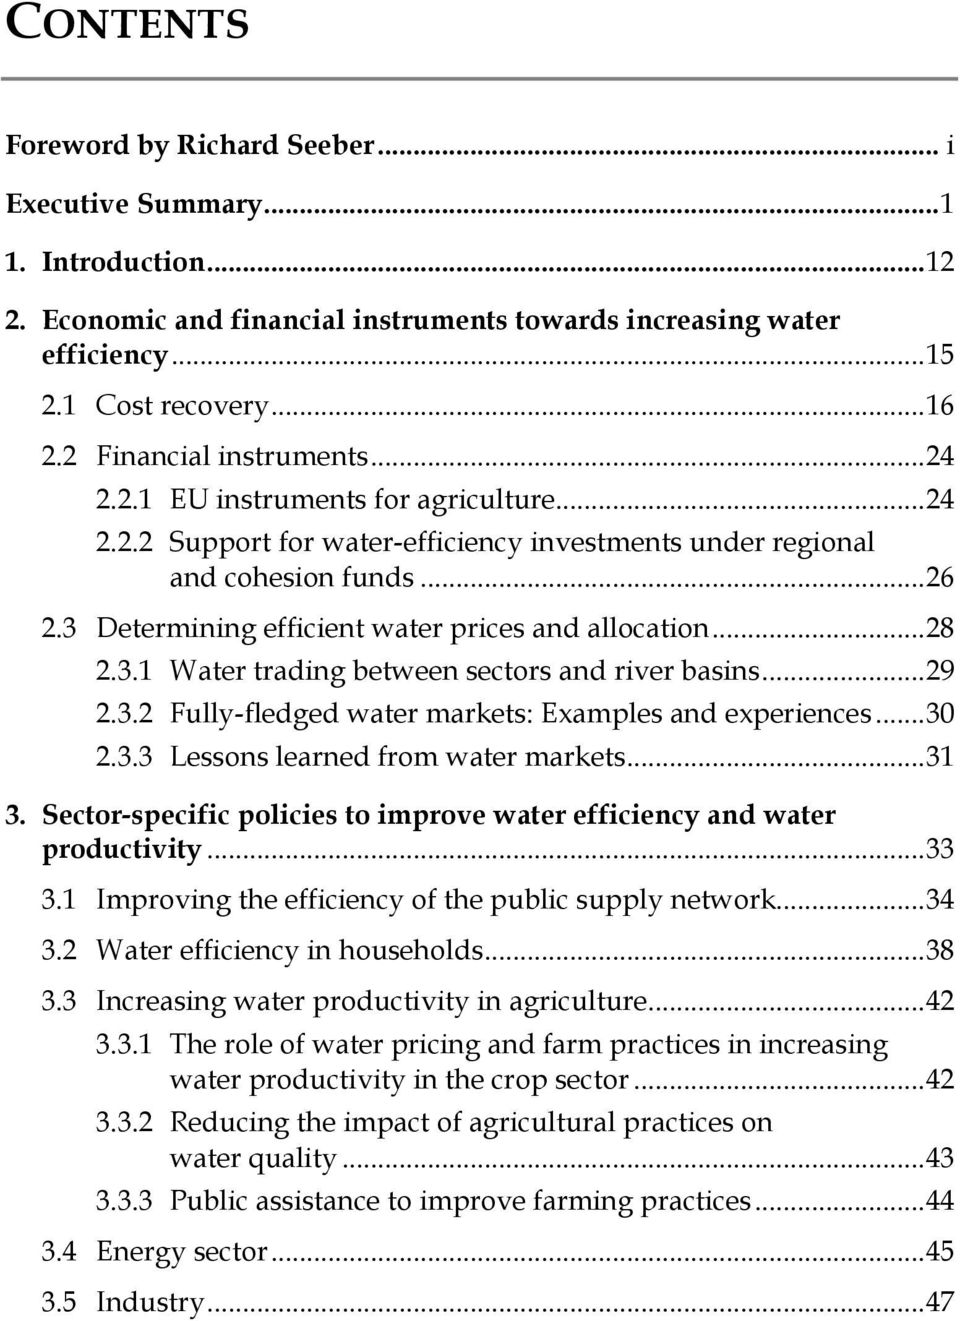 3 Determining efficient water prices and allocation... 28 2.3.1 Water trading between sectors and river basins... 29 2.3.2 Fully-fledged water markets: Examples and experiences... 30 2.3.3 Lessons learned from water markets.